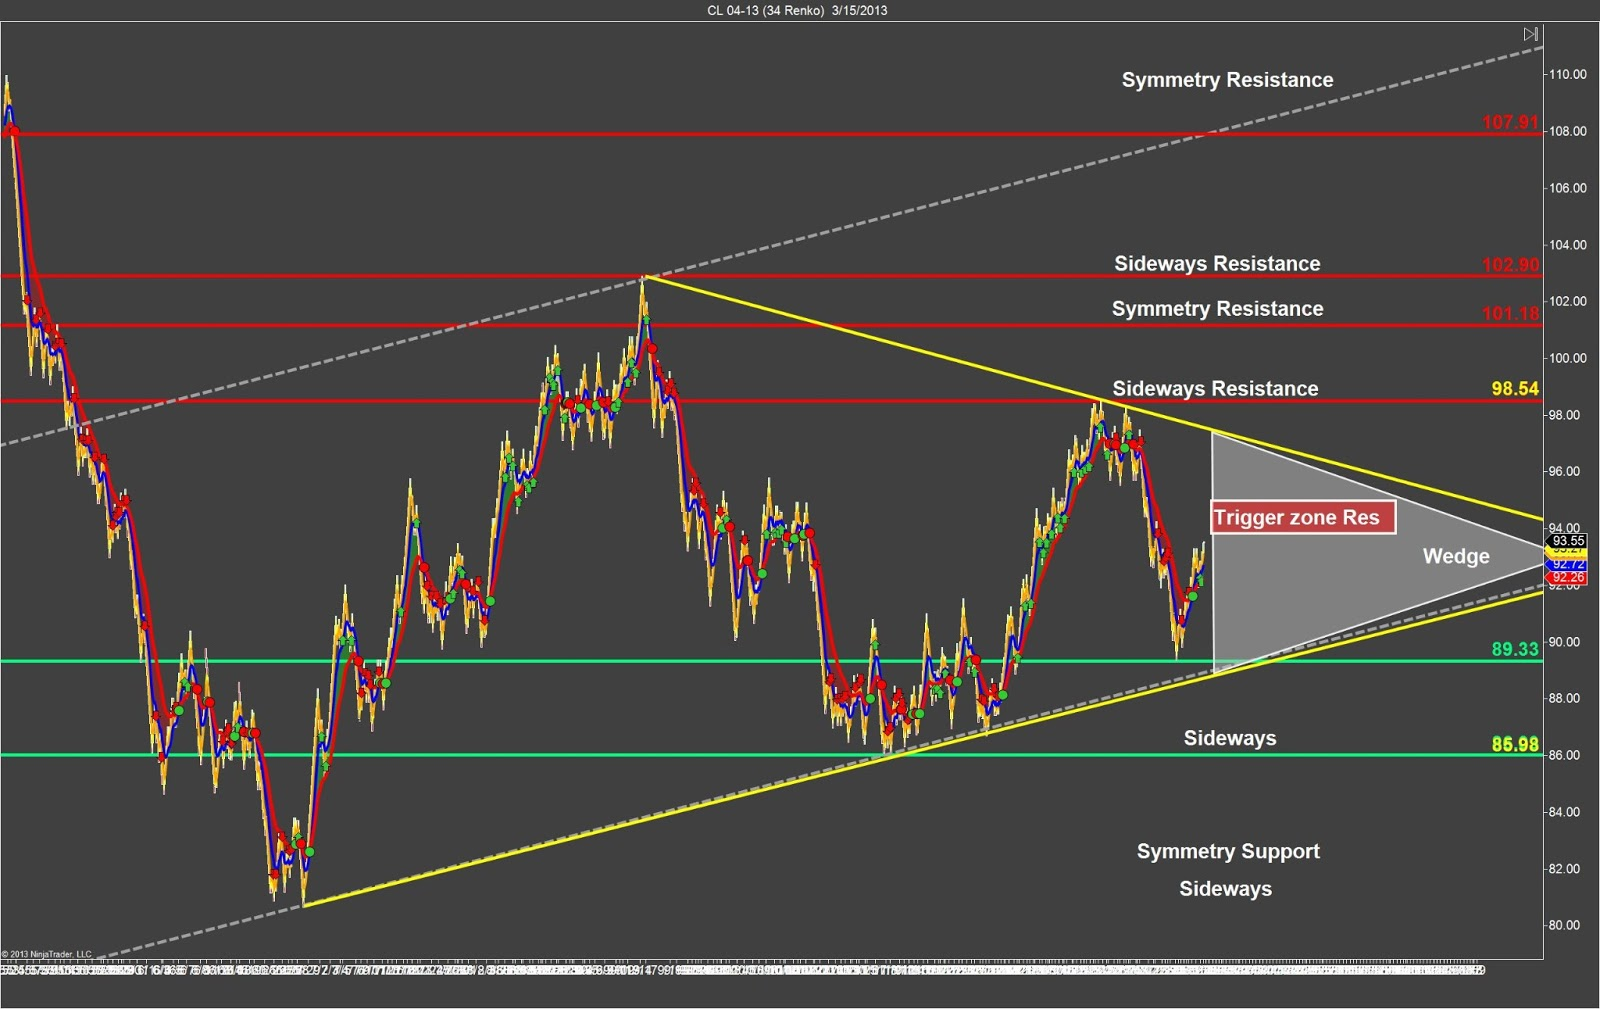 Best trading strategy for crude oil